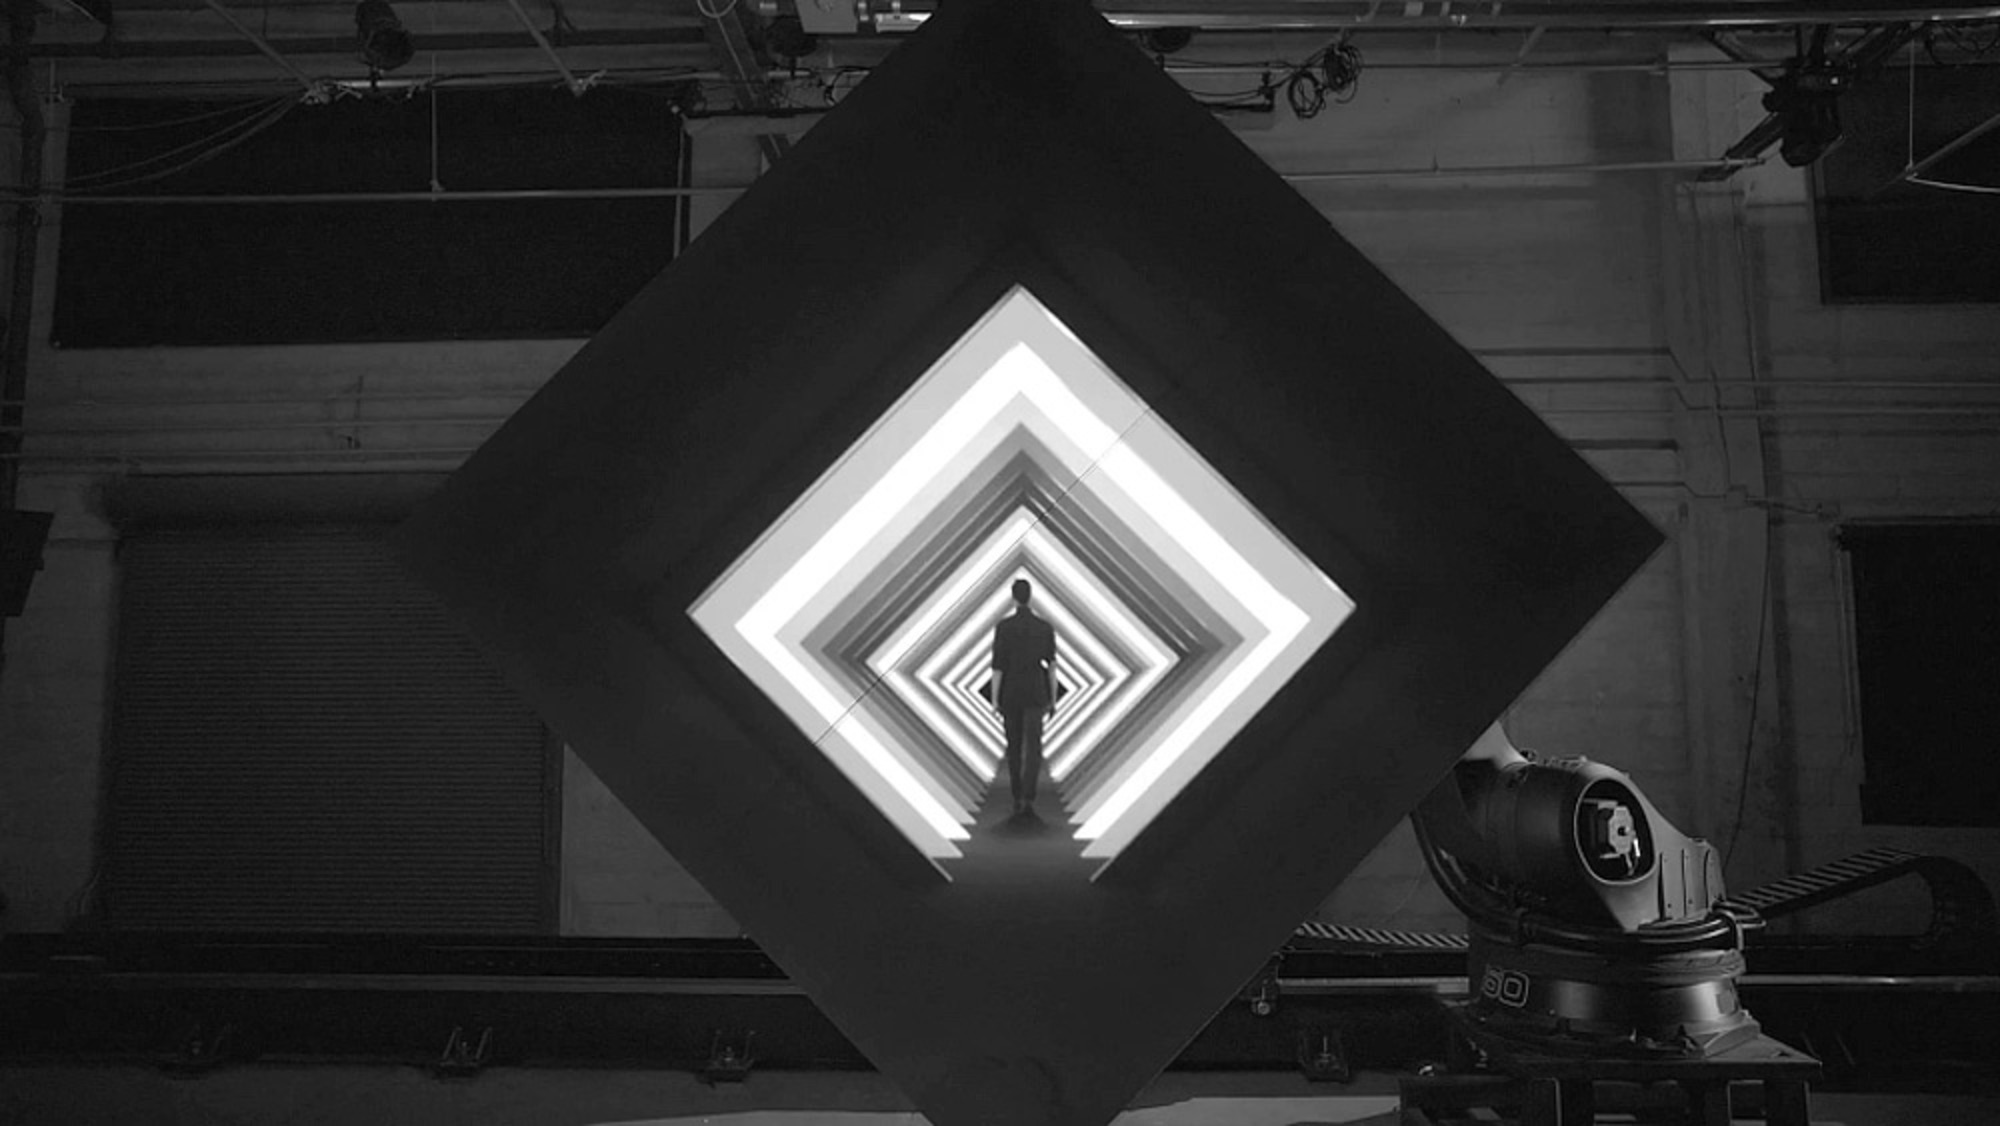 Image: Screen Capture from Box by Bot and Dolly of person walking into geometric shapes showing new innovations in projection technology